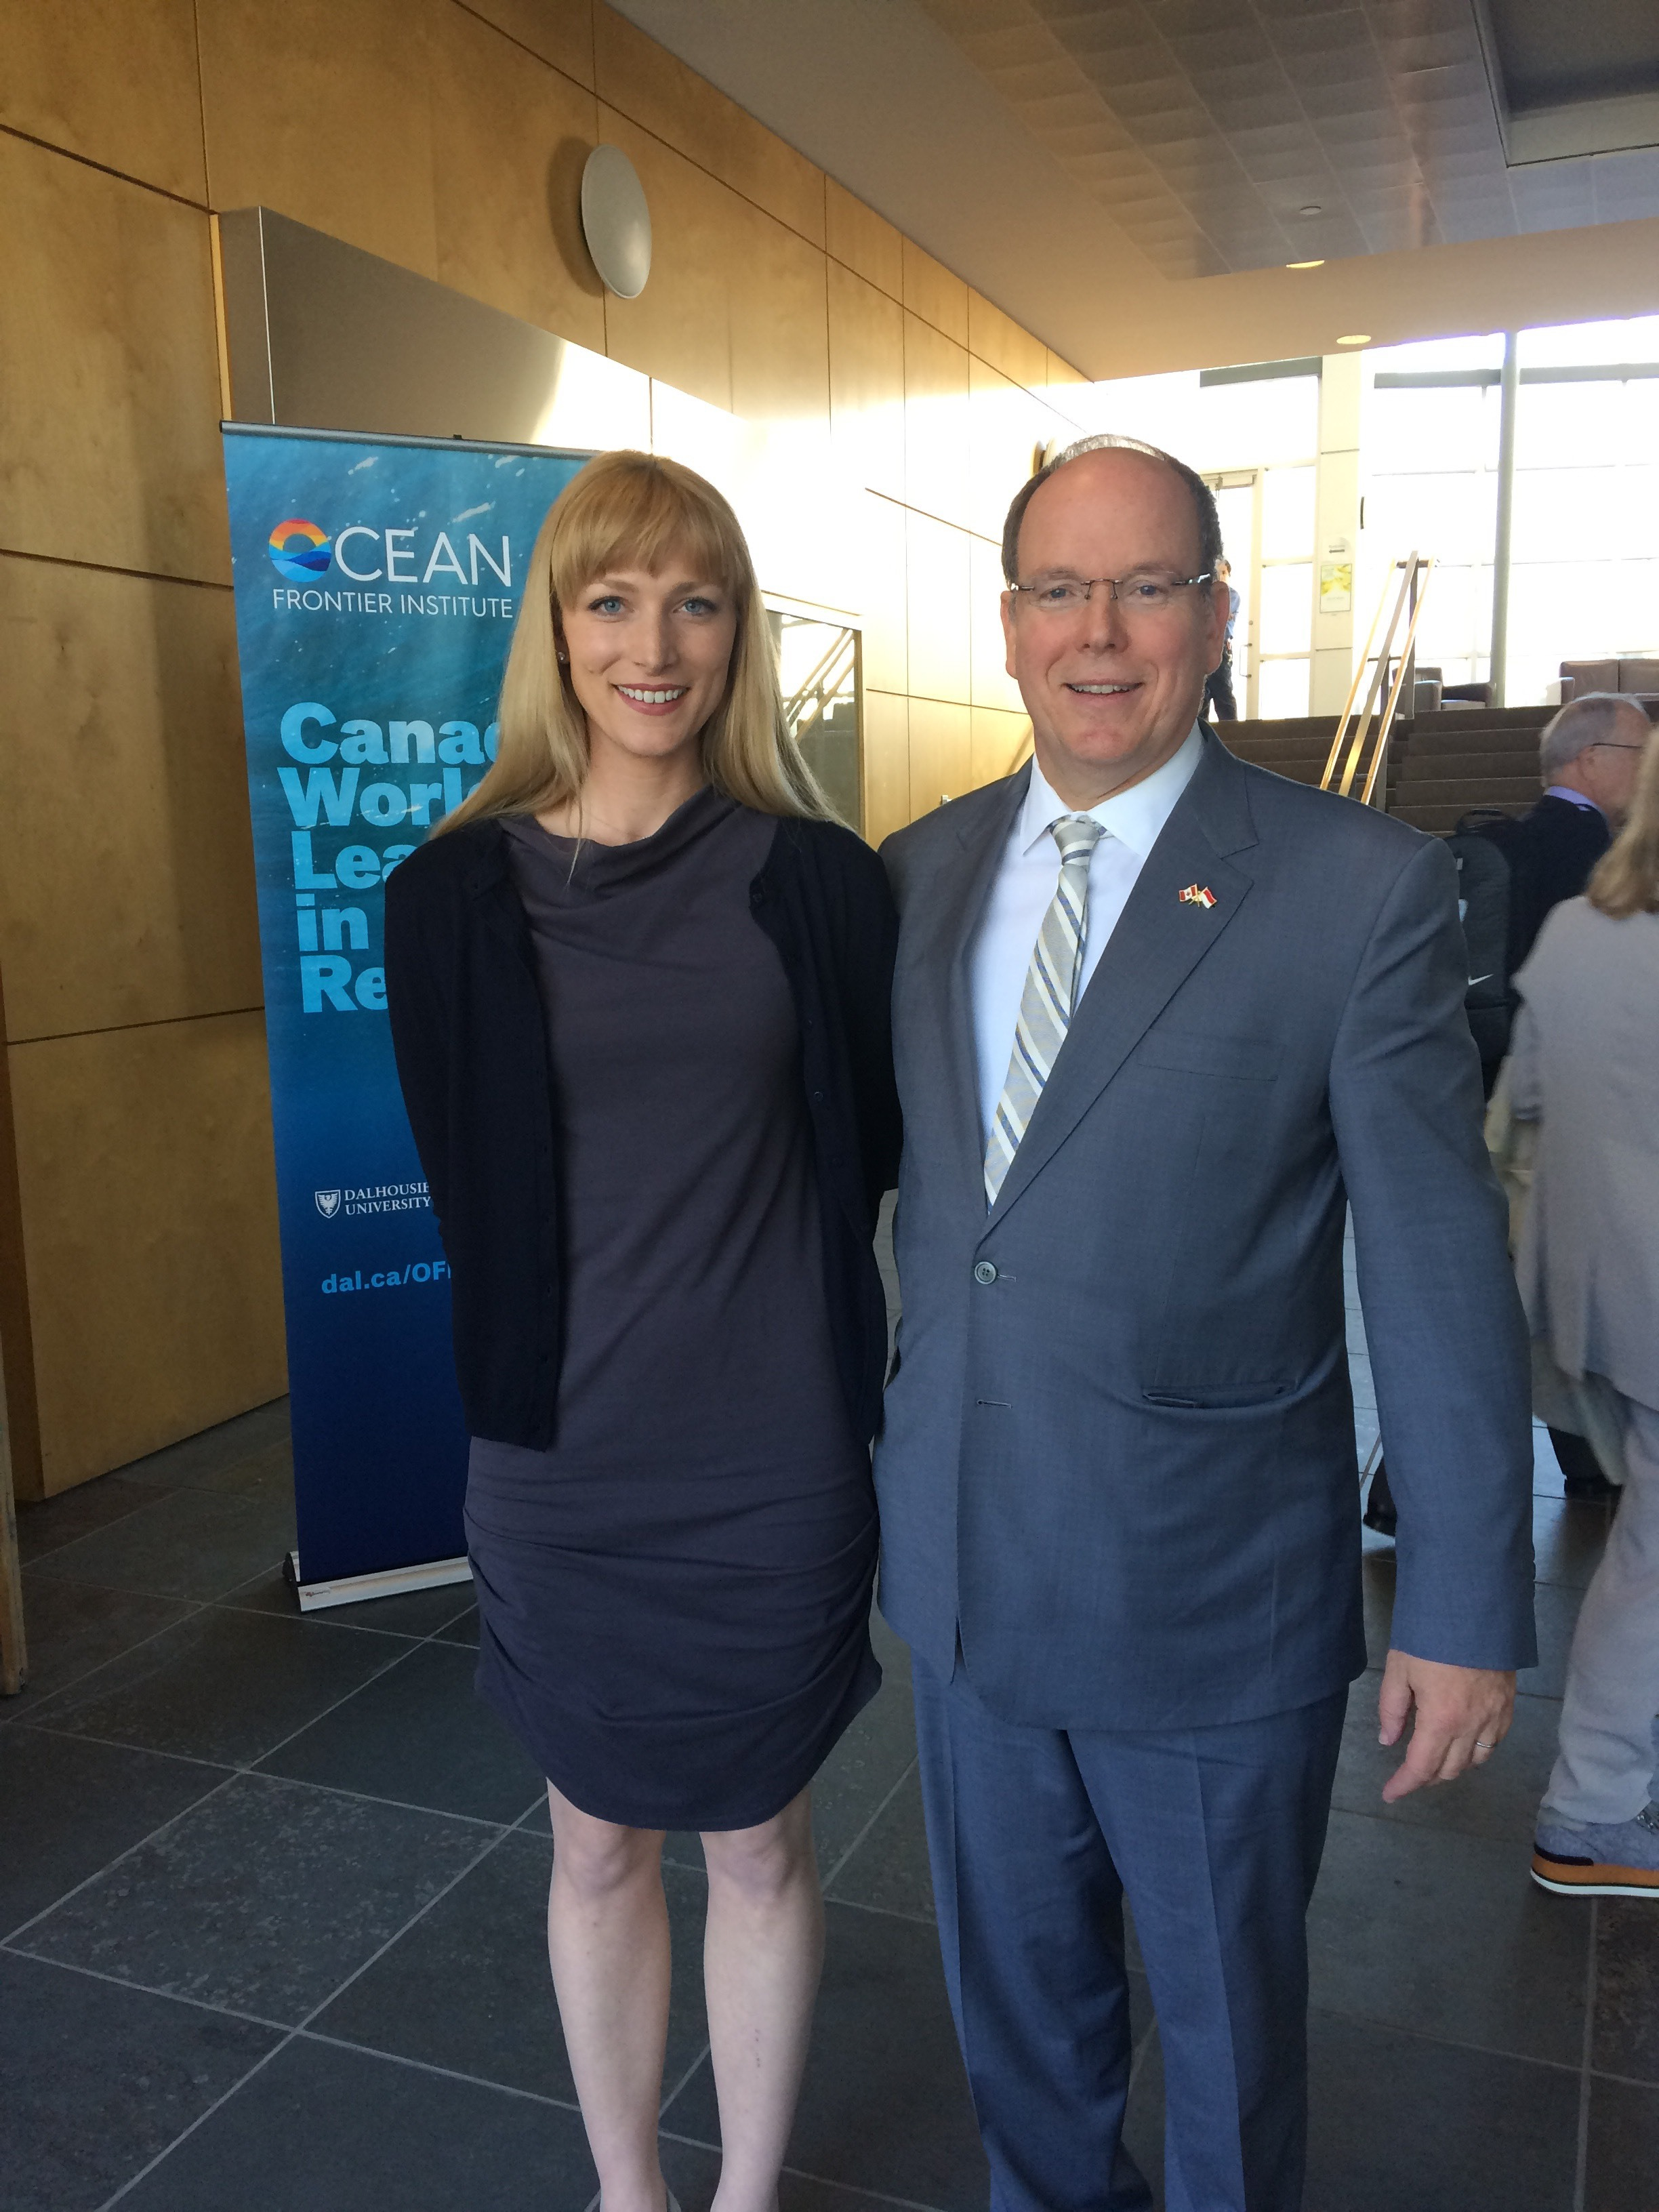 • Meeting HSH Prince Albert of Monaco at the Ocean Frontier Institute's event: An Ocean of Opportunities Q&A - May 2018 -